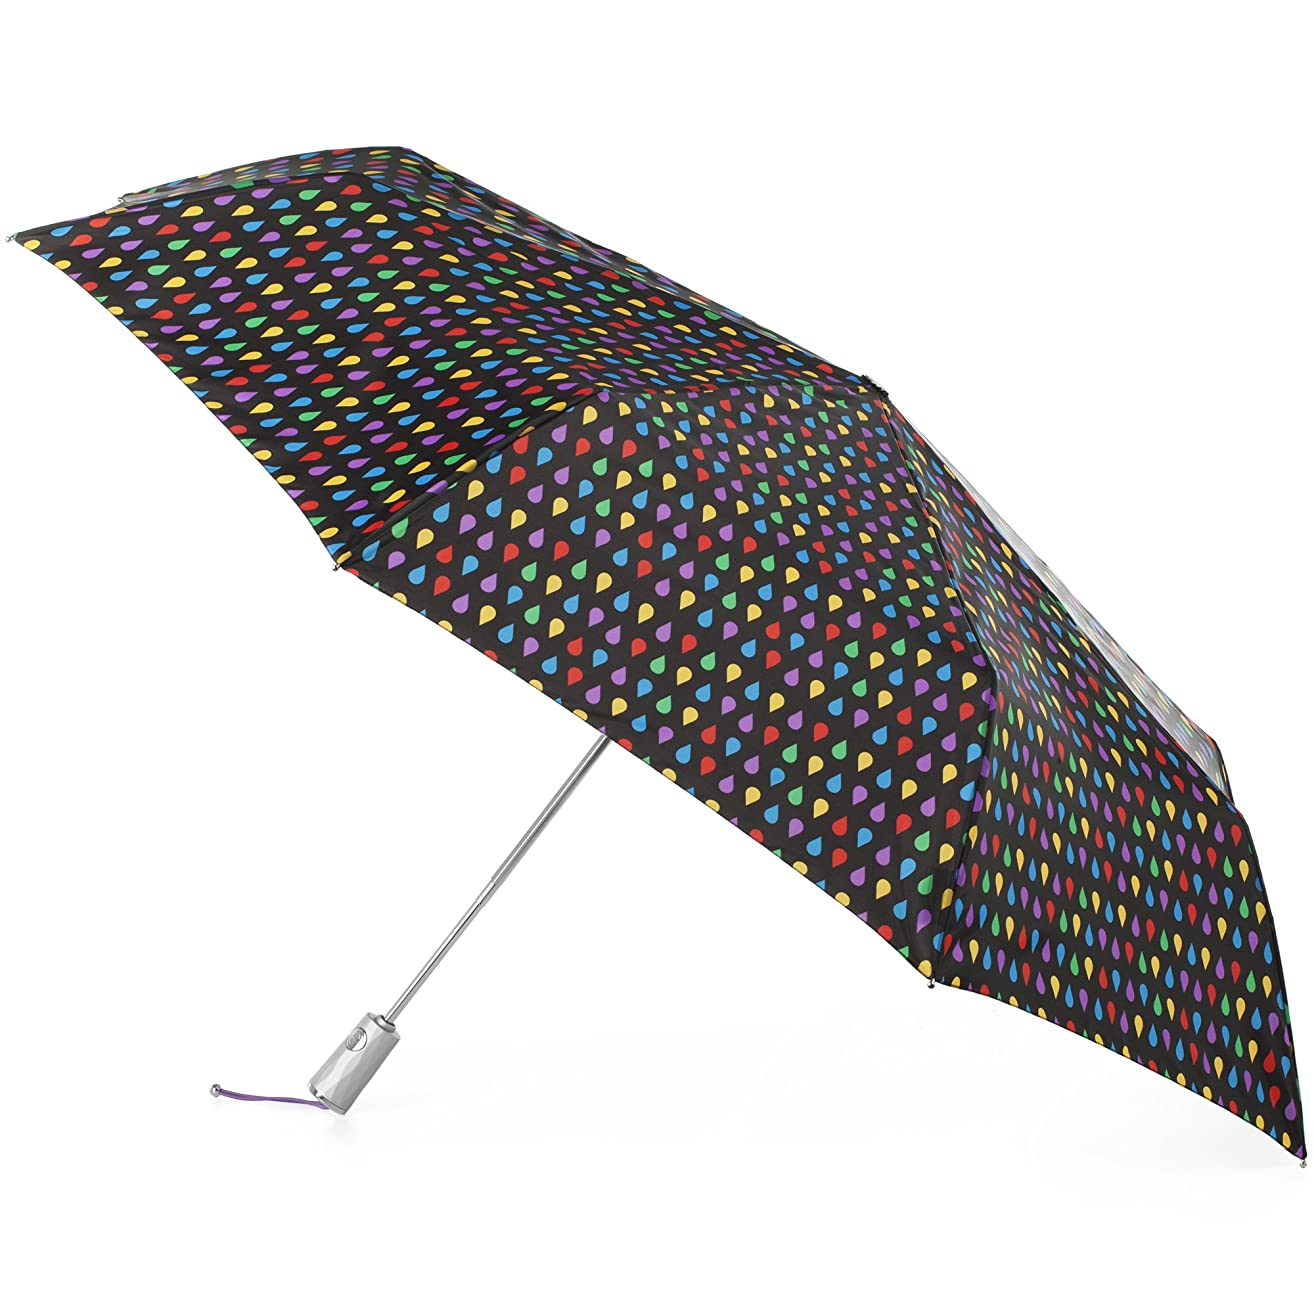 totes Auto Open Close Golf Size Umbrella with NeverWet and SunGuard